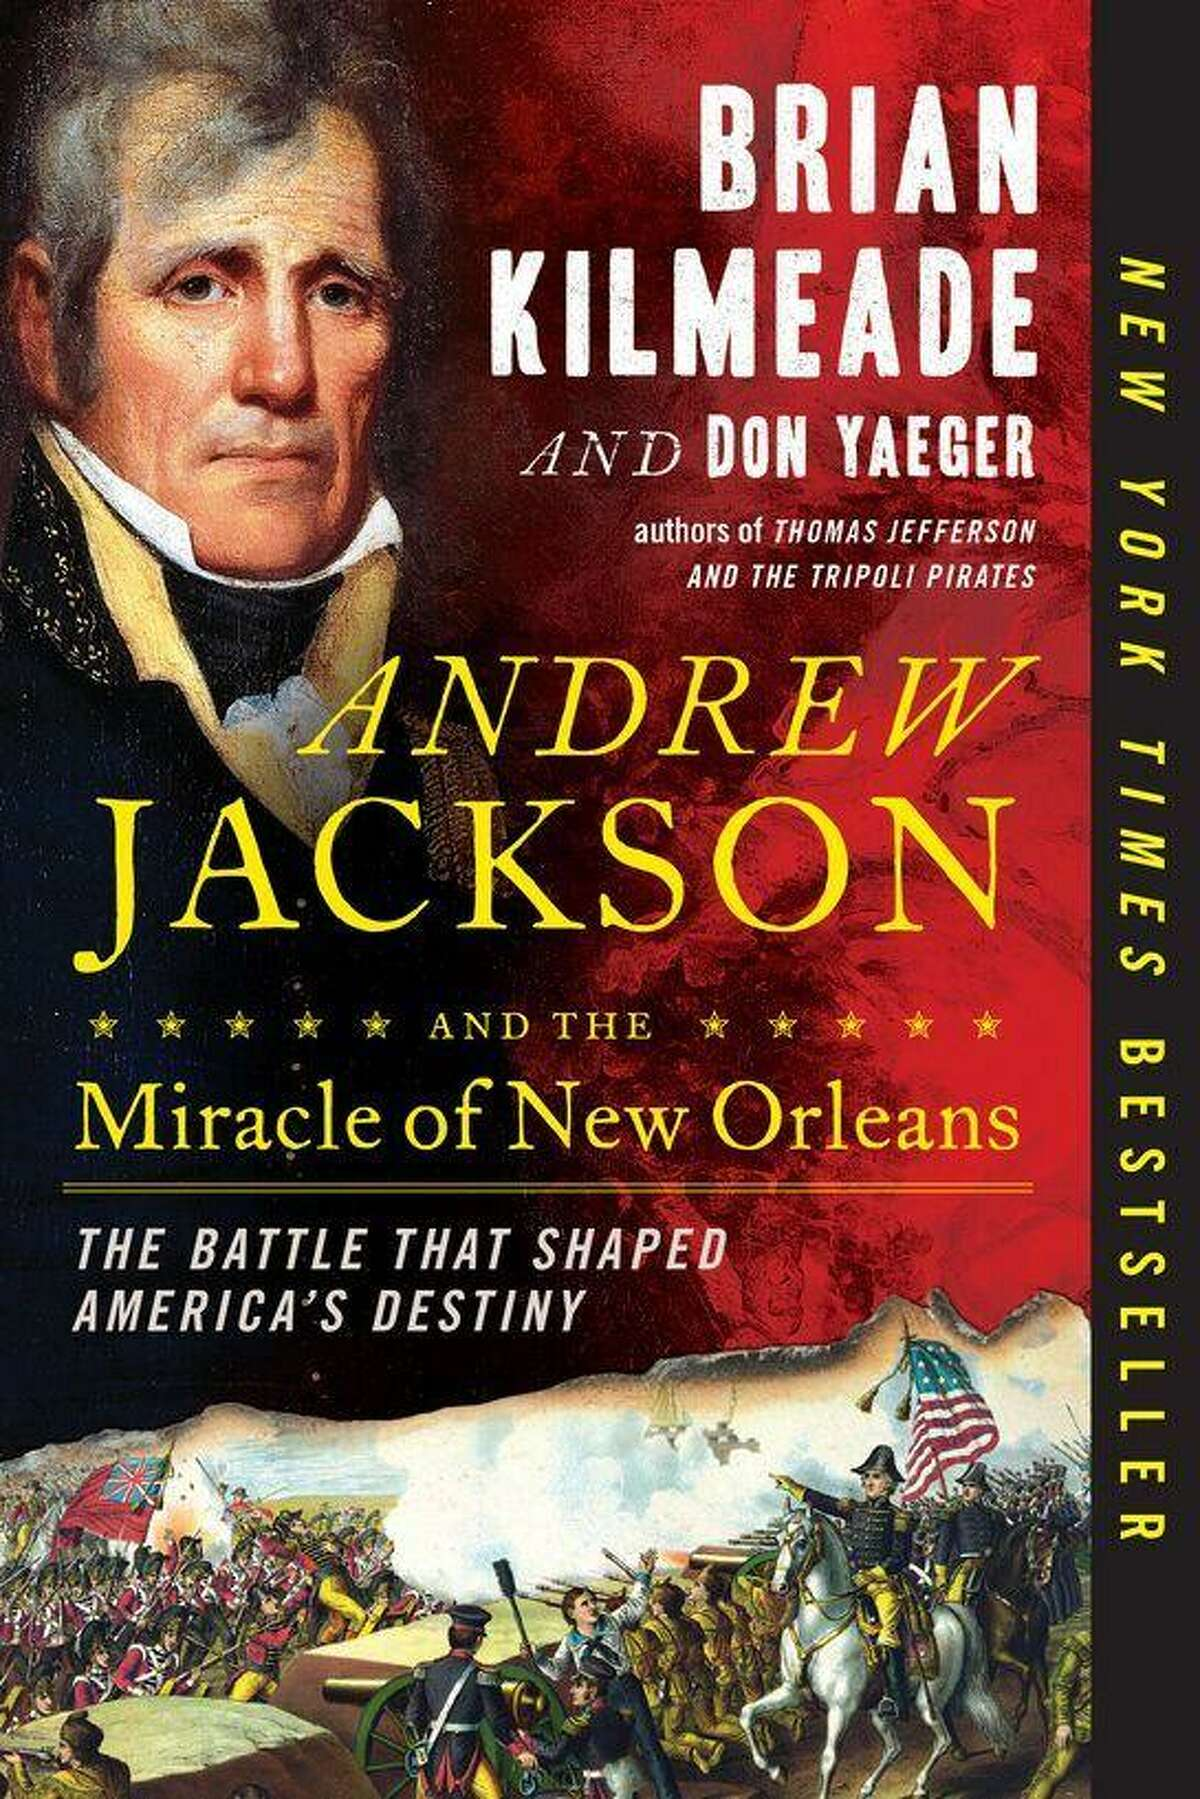 """Brian Kilmeade's new book """"Andrew Jackson and the Miracle of New Orleans: The Battle that Shaped America's Destiny"""""""